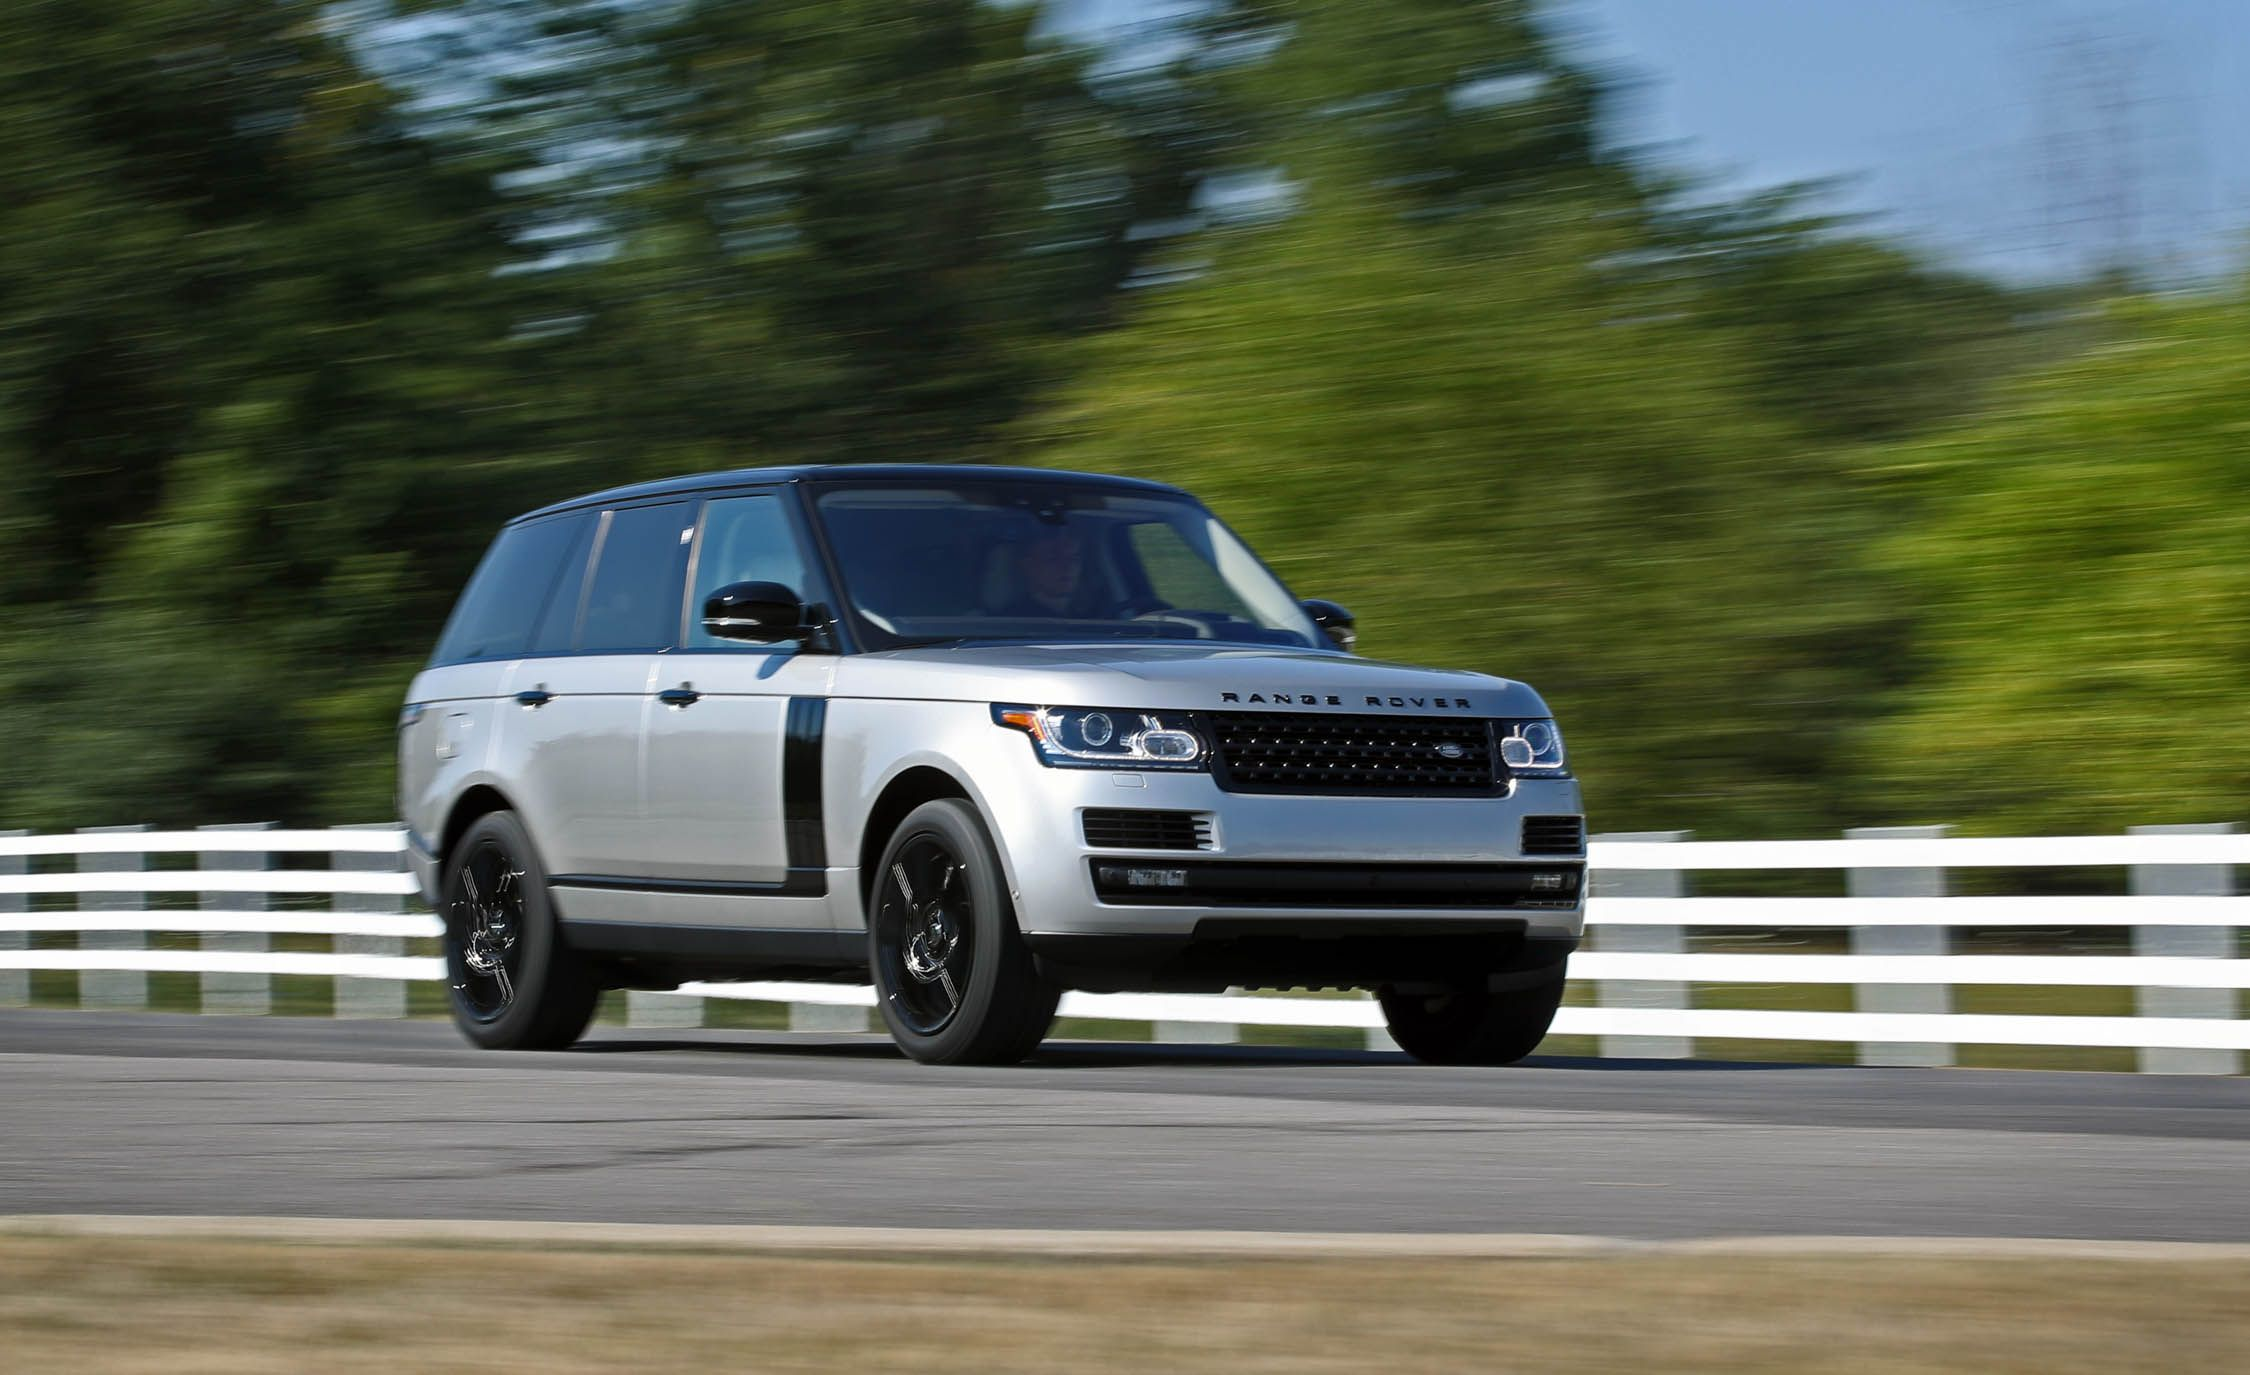 Land Rover Range Rover Supercharged Reviews   Land Rover Range Rover  Supercharged Price, Photos, and Specs   Car and Driver